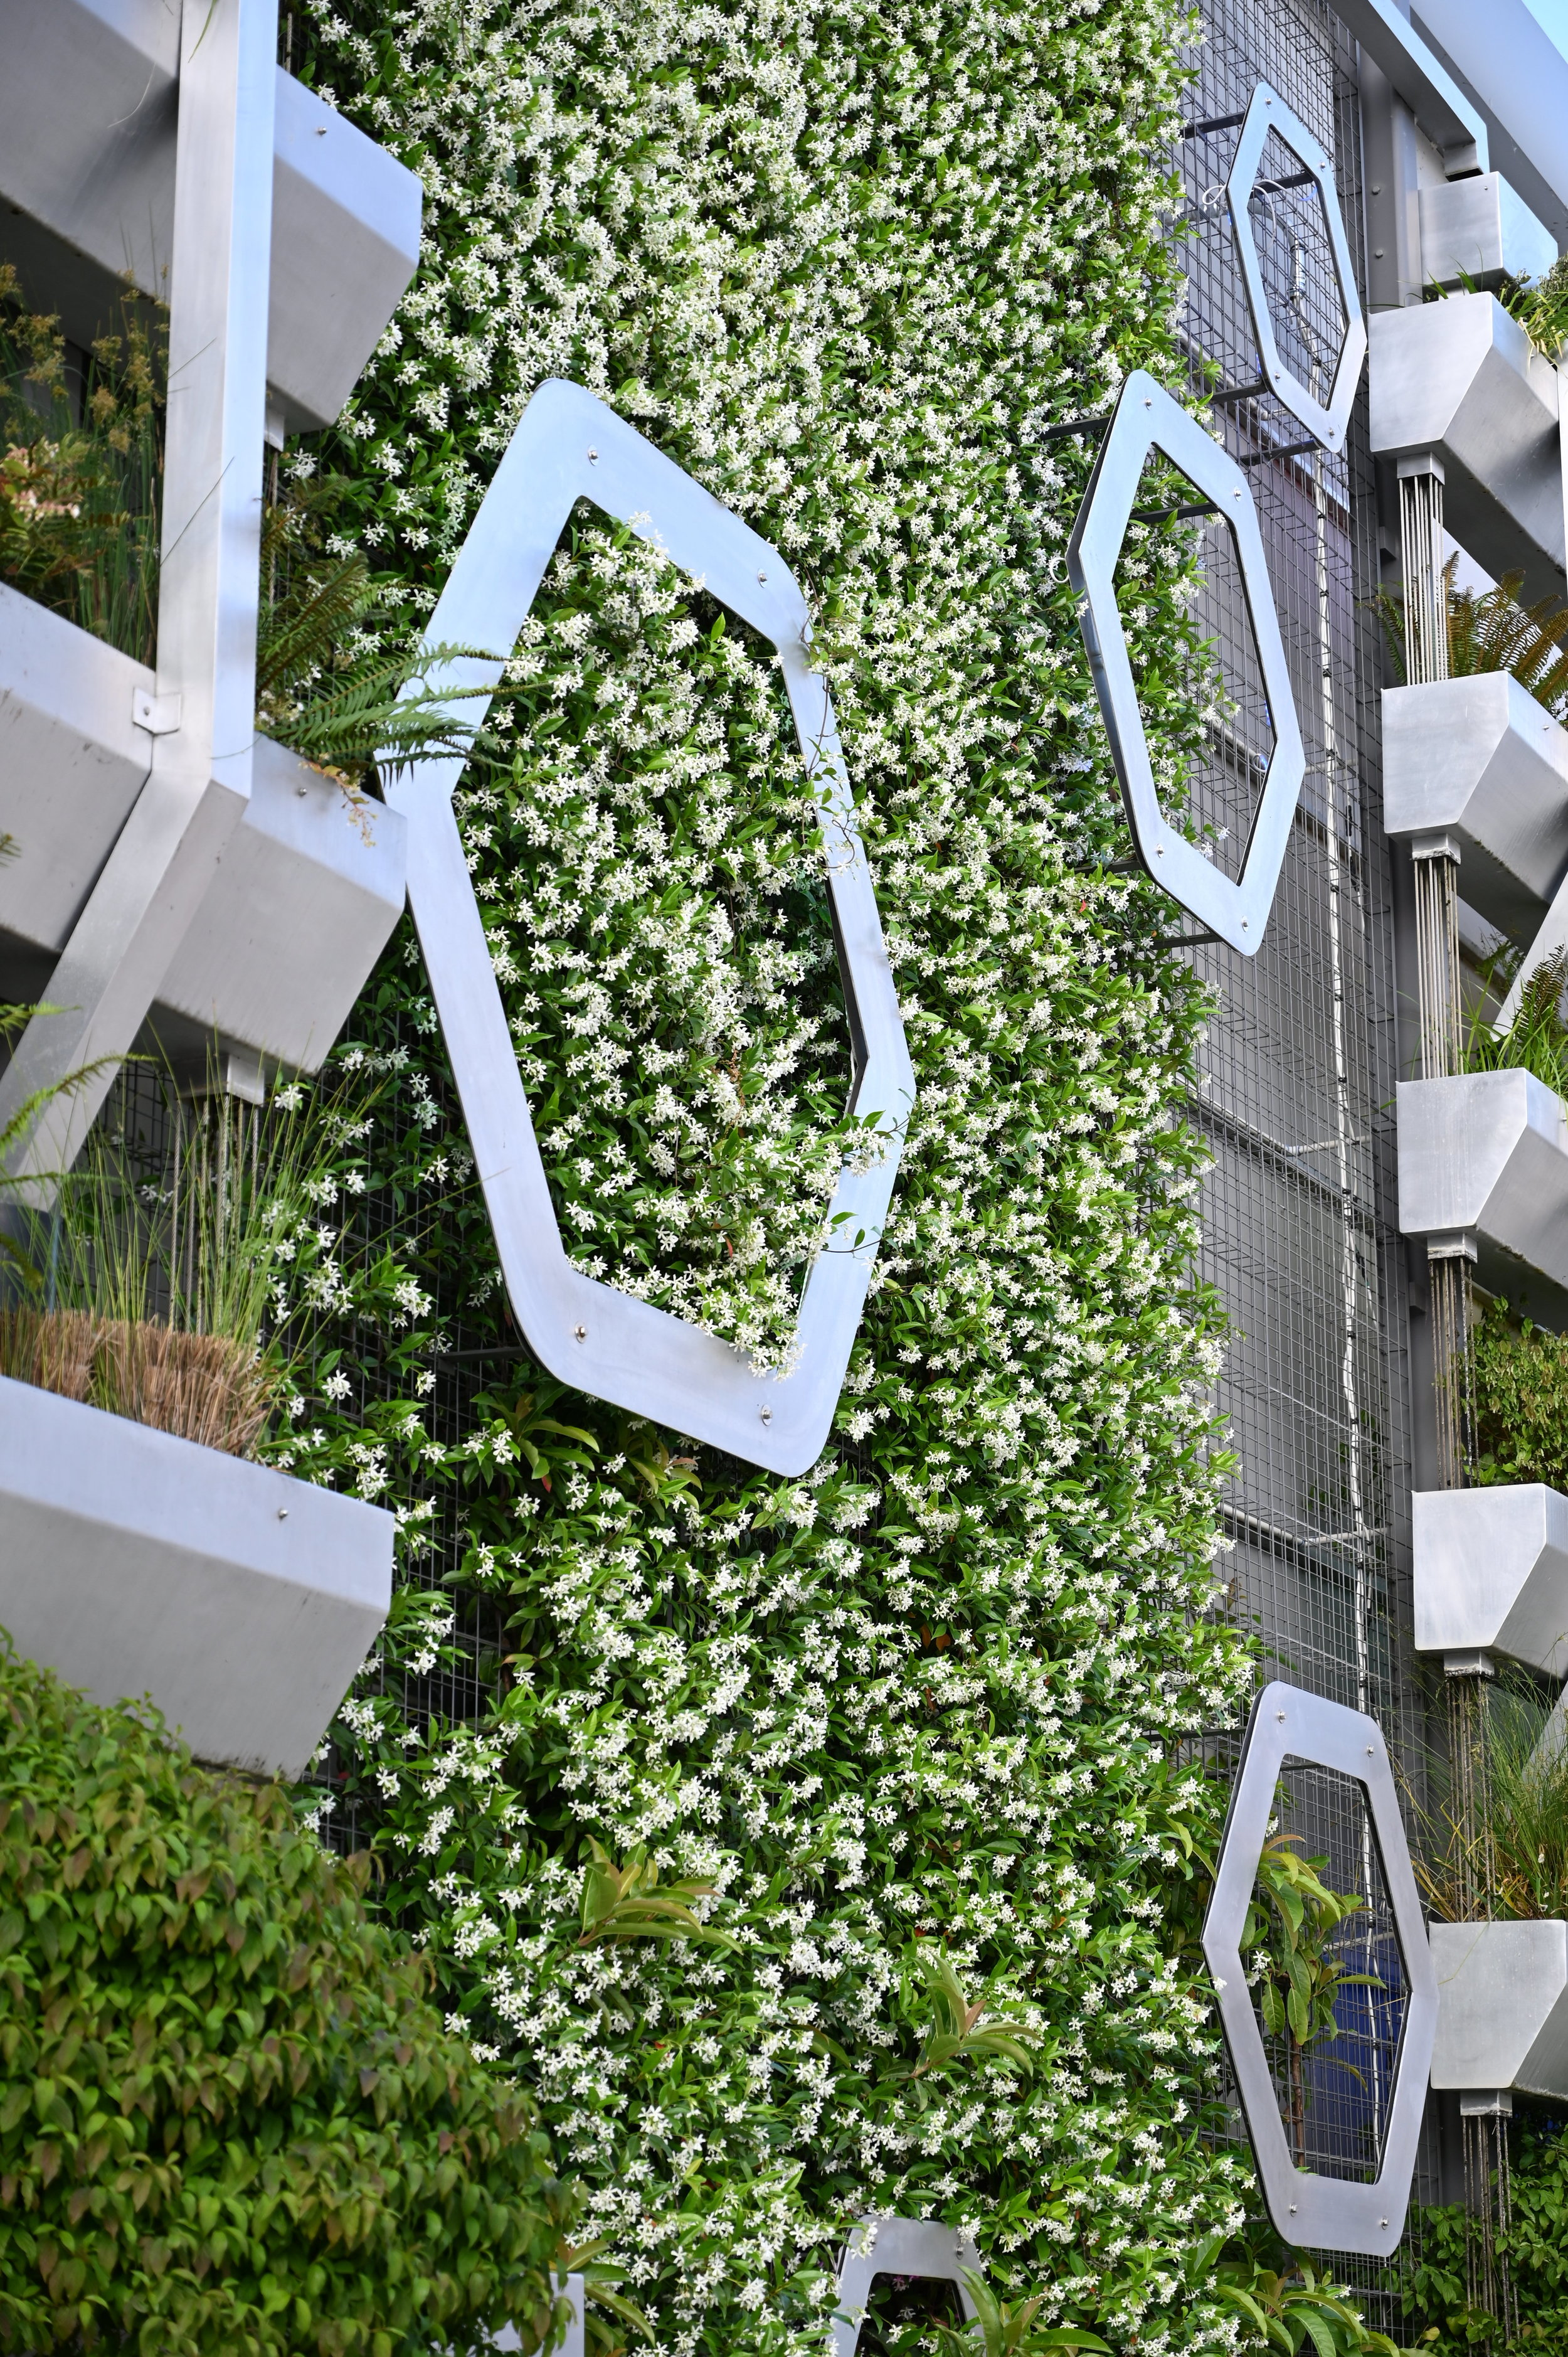 Four hexagons on green wall among star jasmine growing from wire mesh background